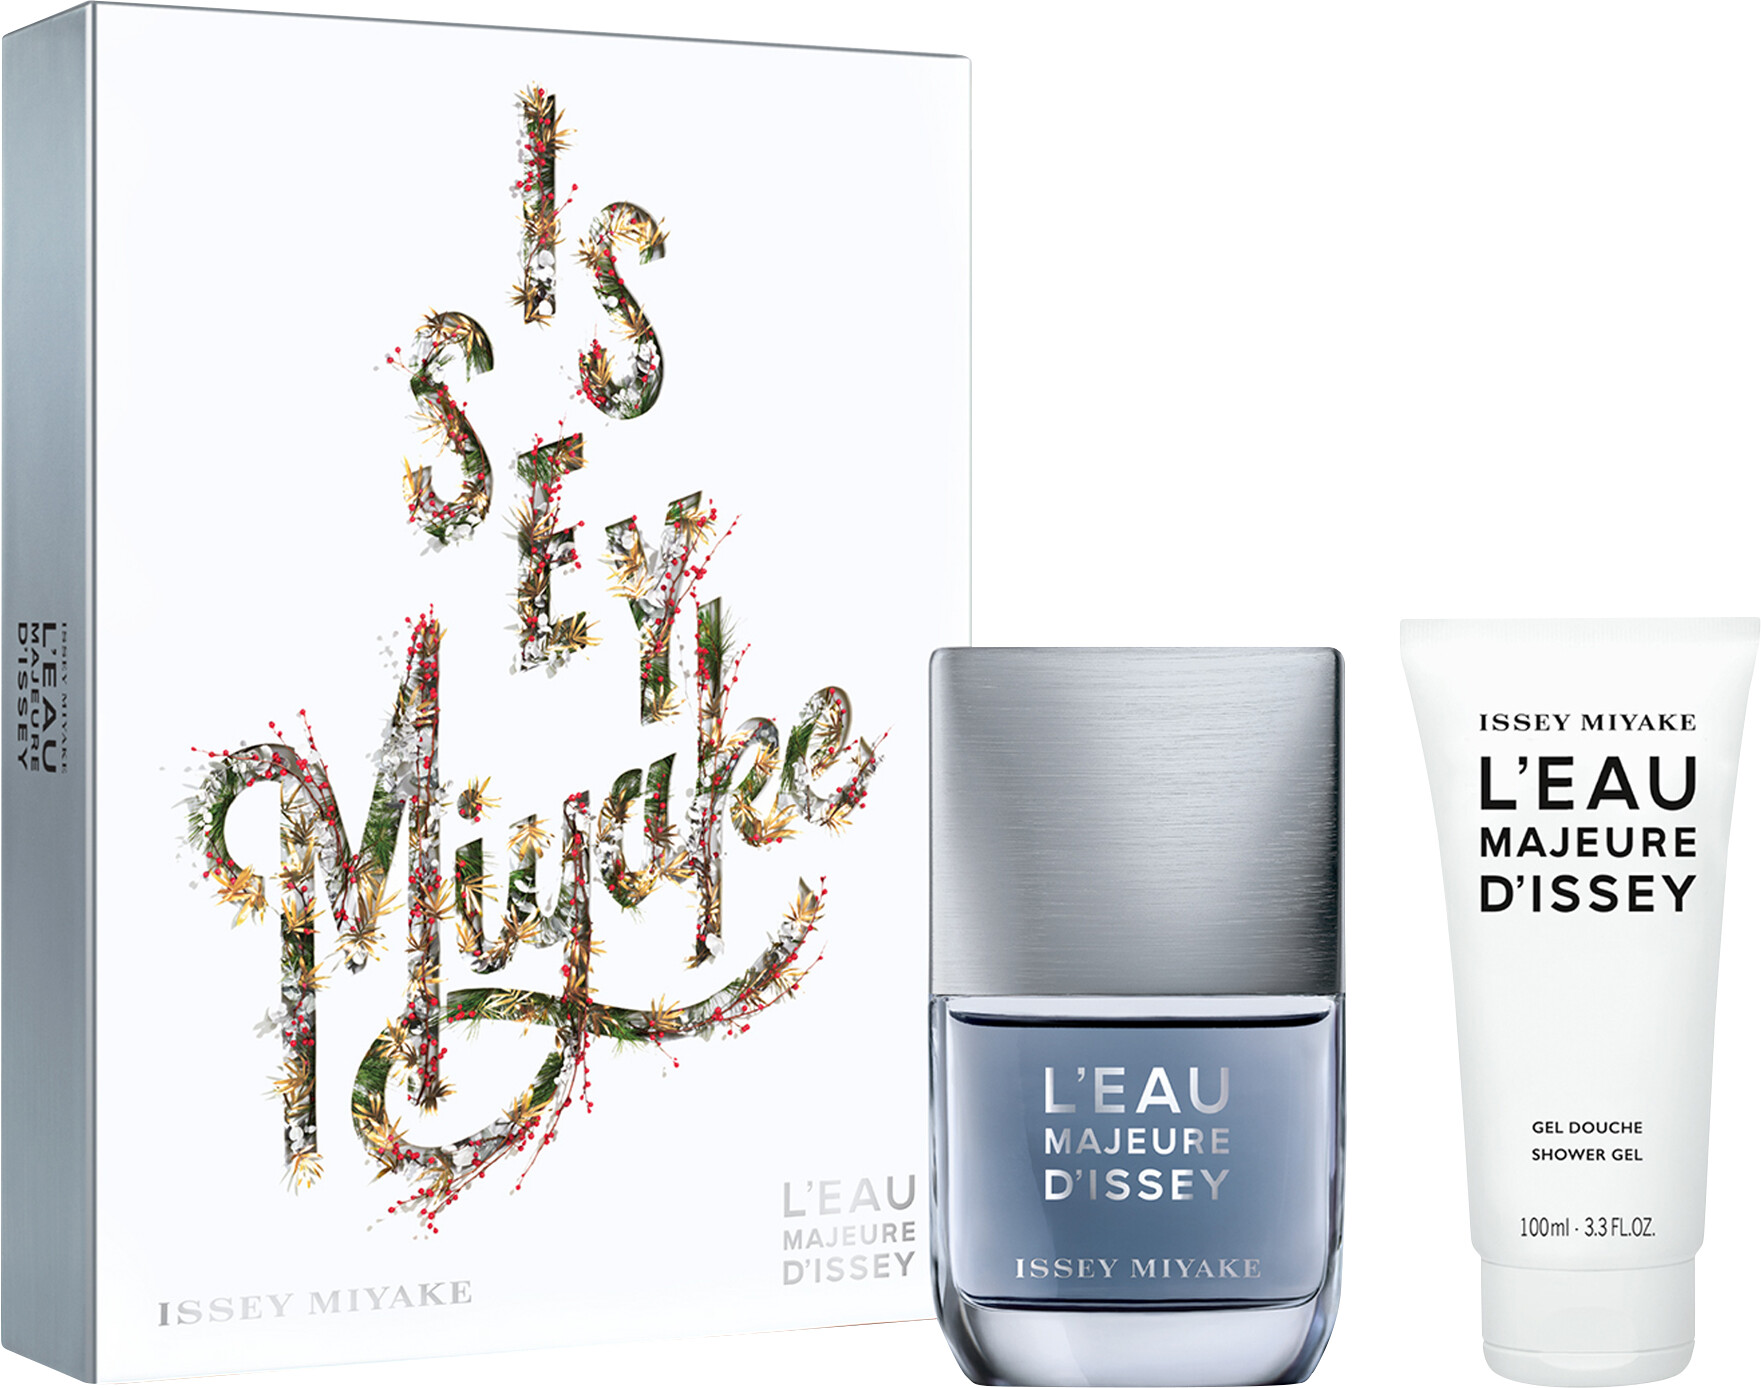 Issey Miyake Leau Majeure Dissey Eau De Toilette Spray Gift Set